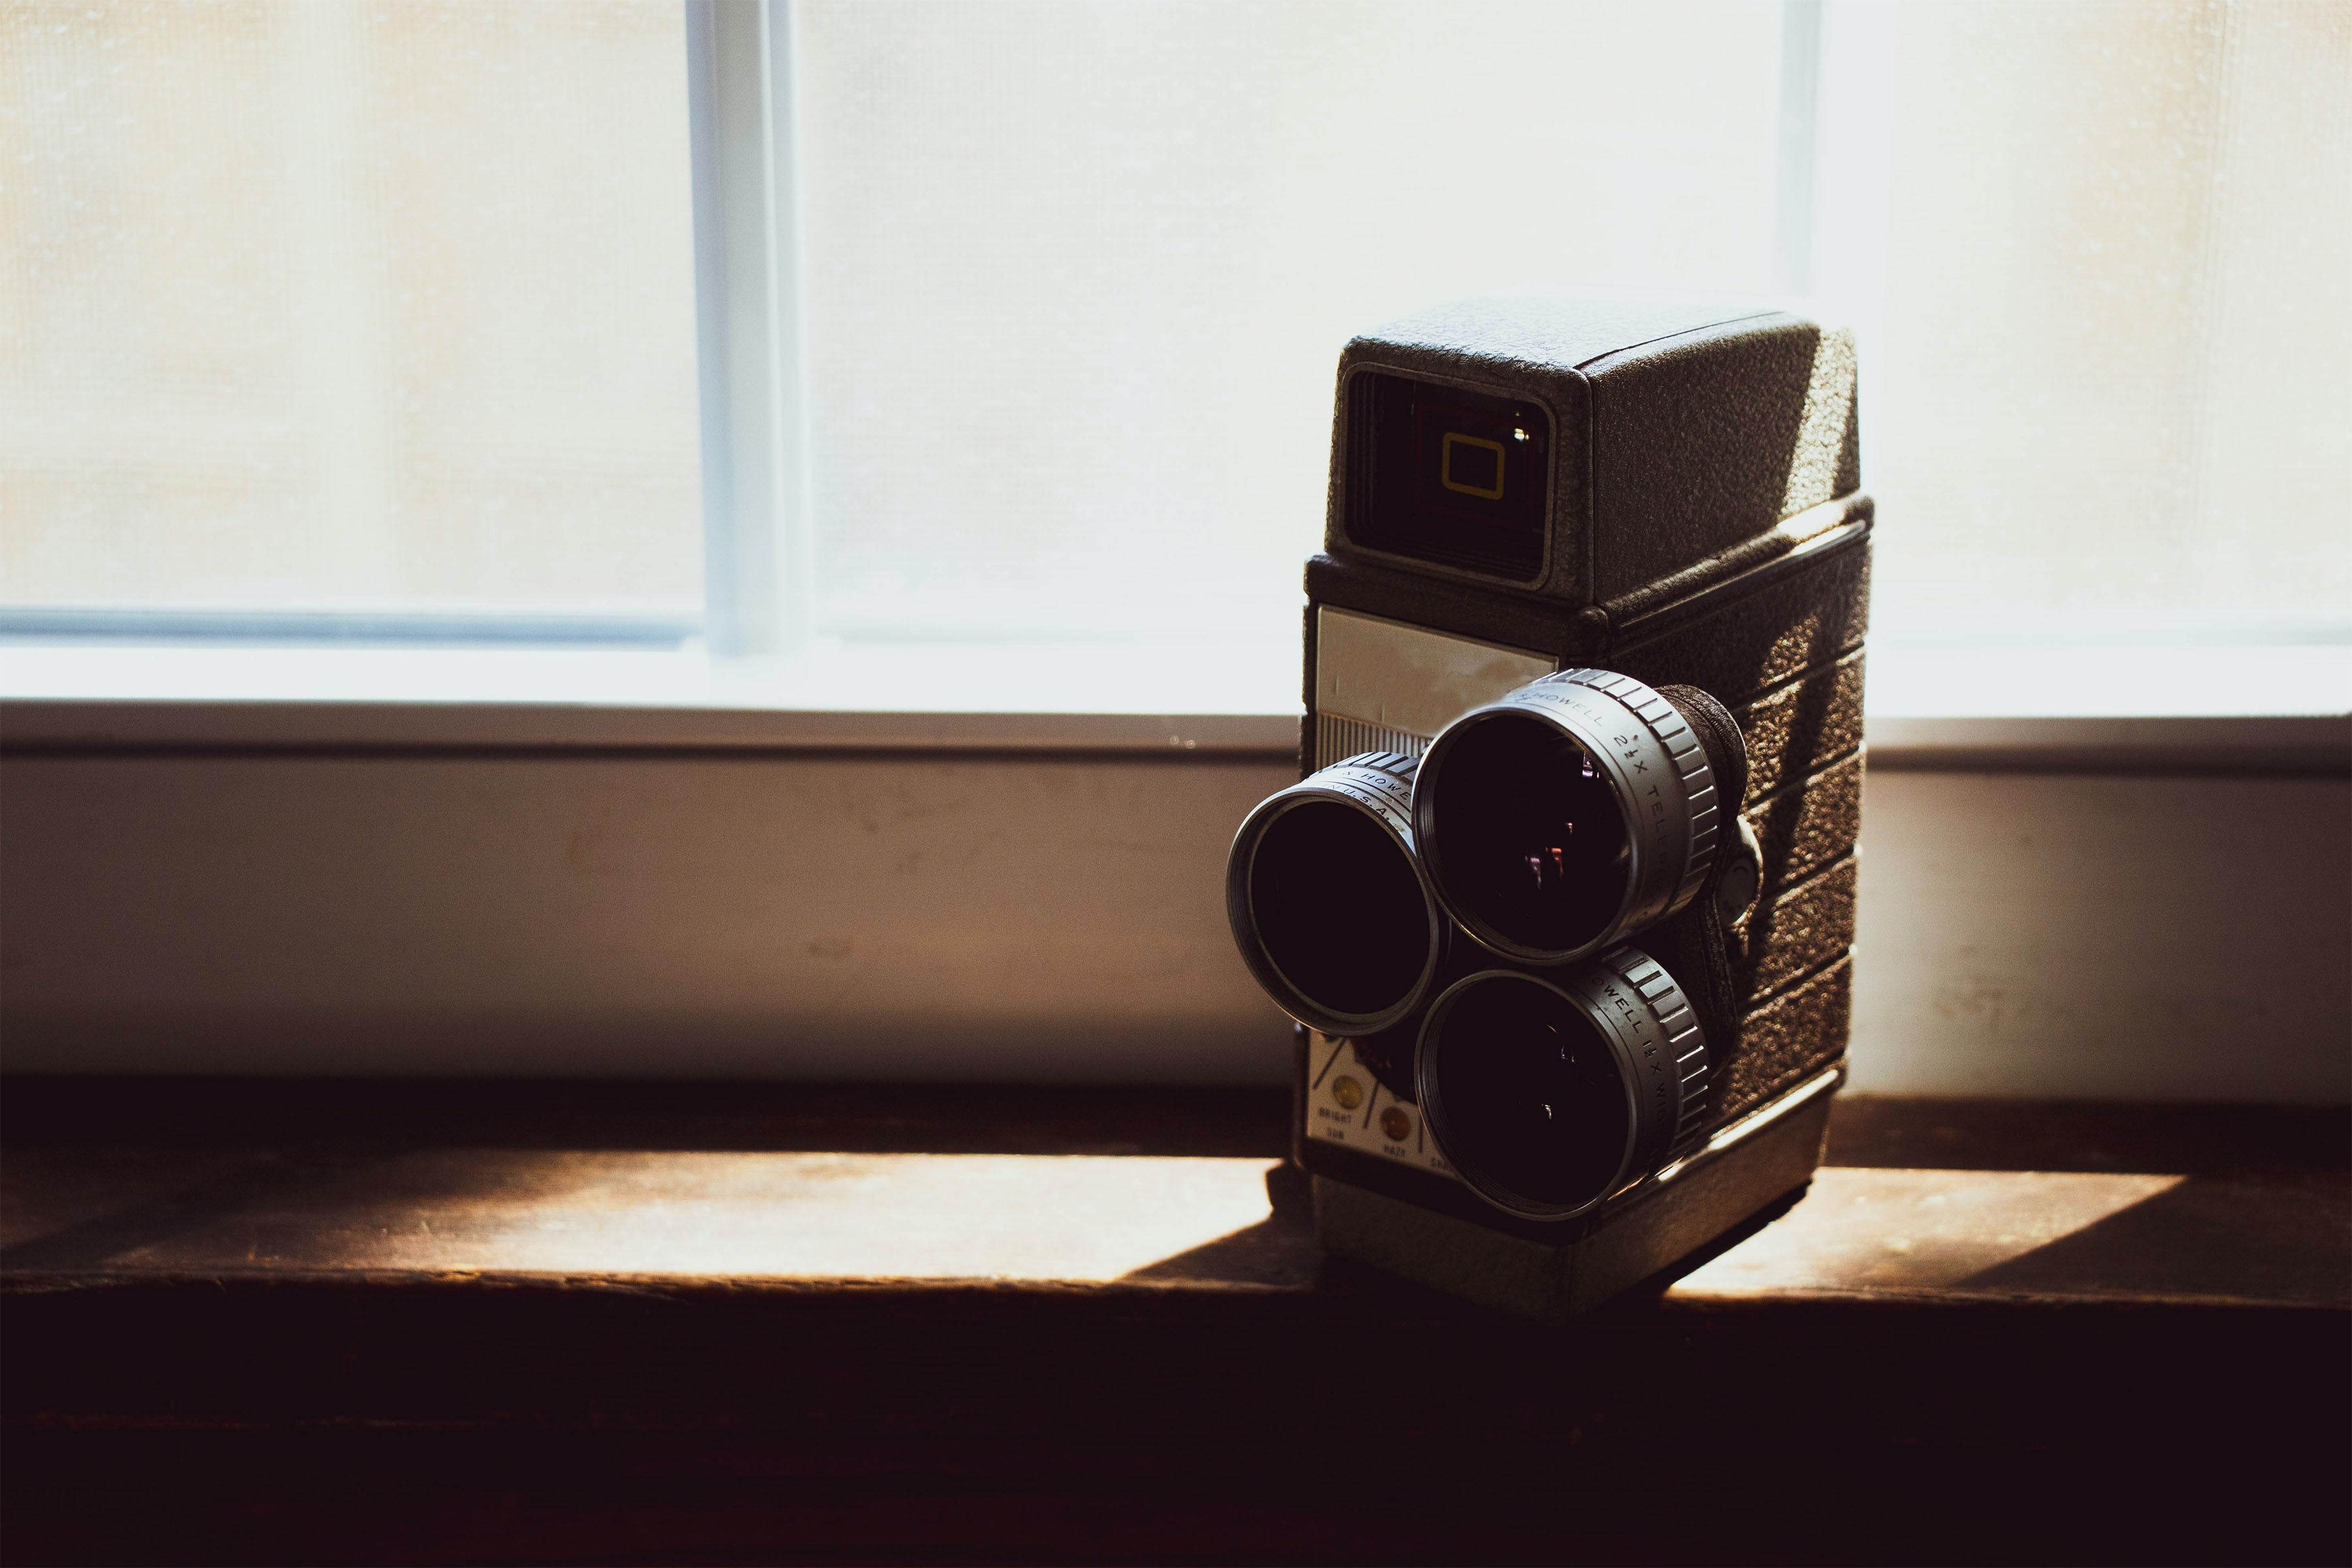 Black Vintage Camera On Table